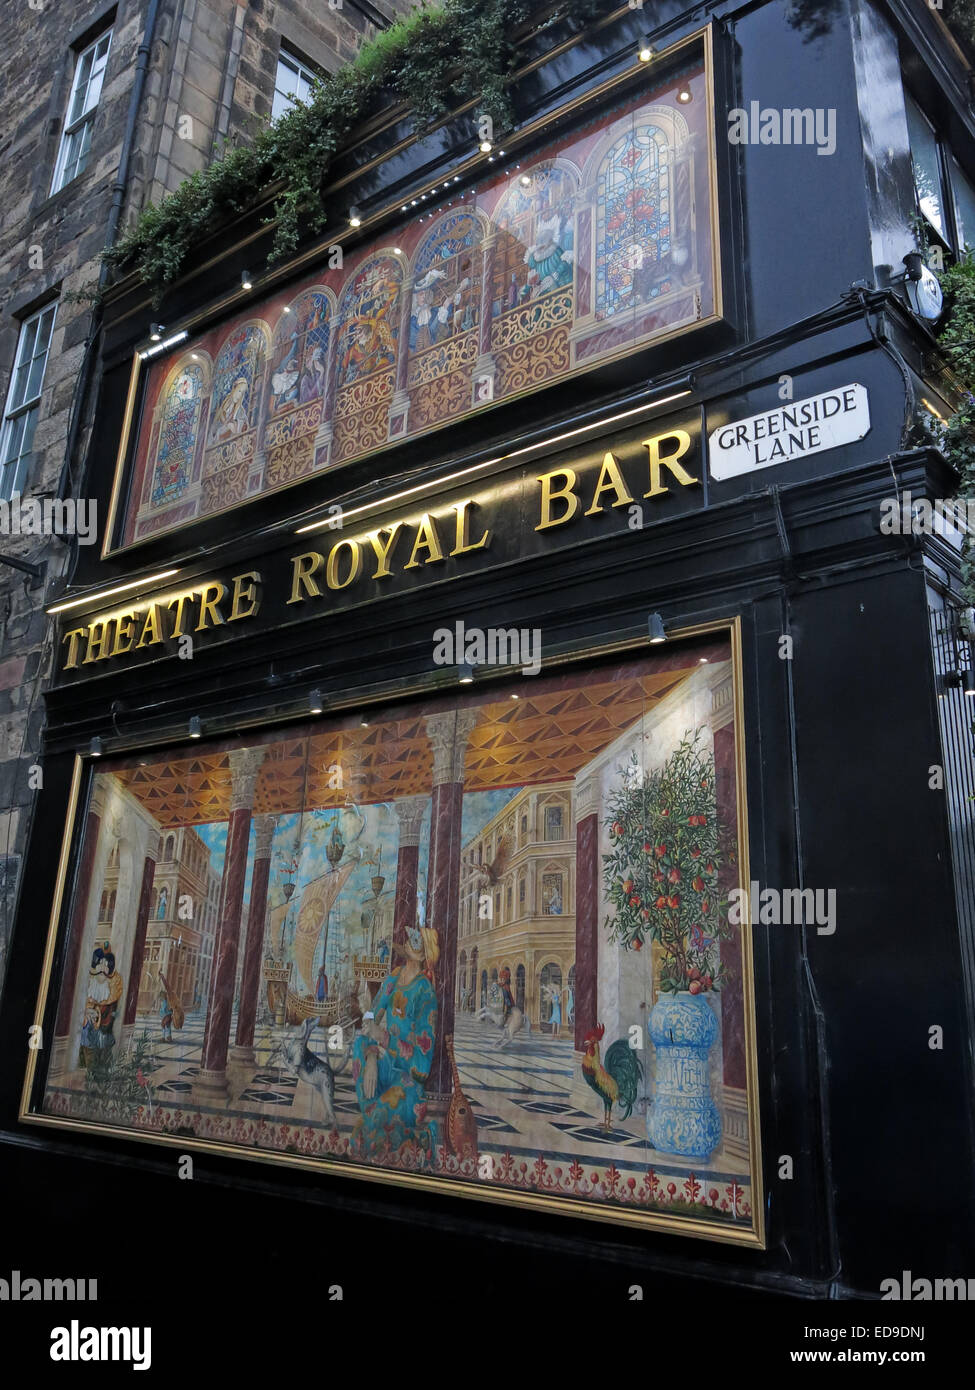 Theatre Royal Bar, Greenside lane, Edinburgh, Scotland, UK - Stock Image